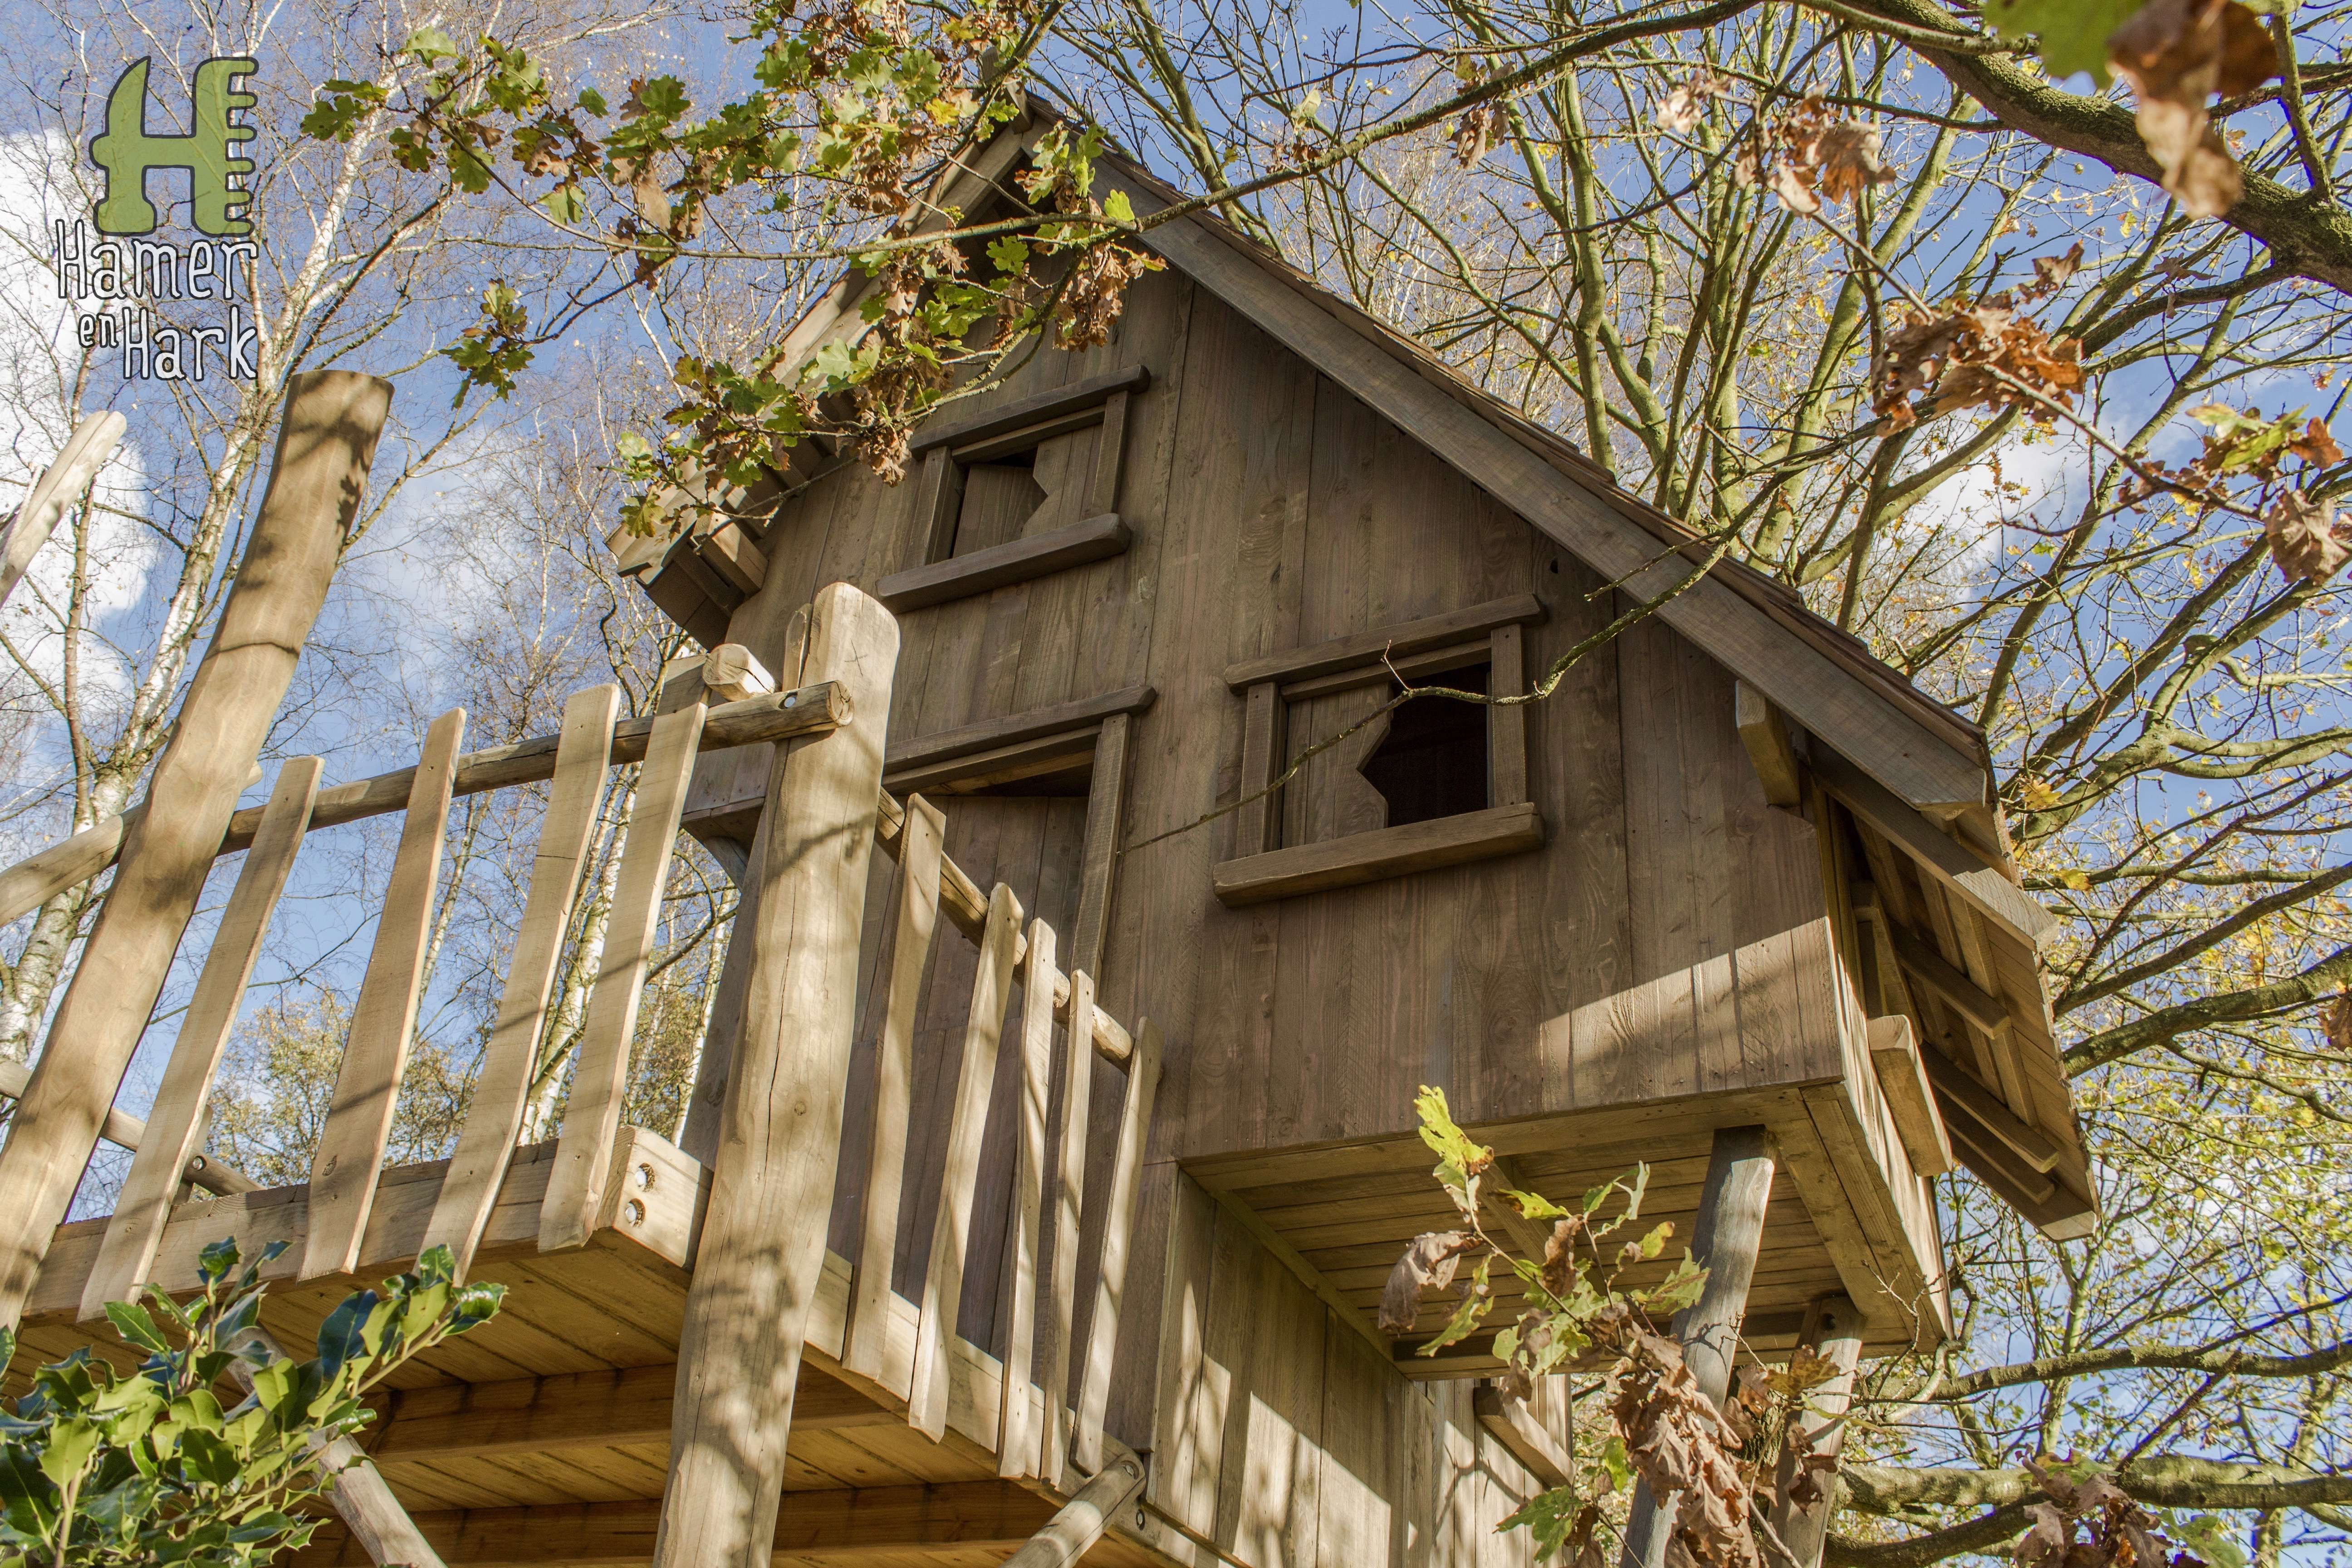 #projecthaasrode #boomhut #hamerenhark #hout #speelhuis #houtmoet #treehouse #playhouse #wood #welovewood